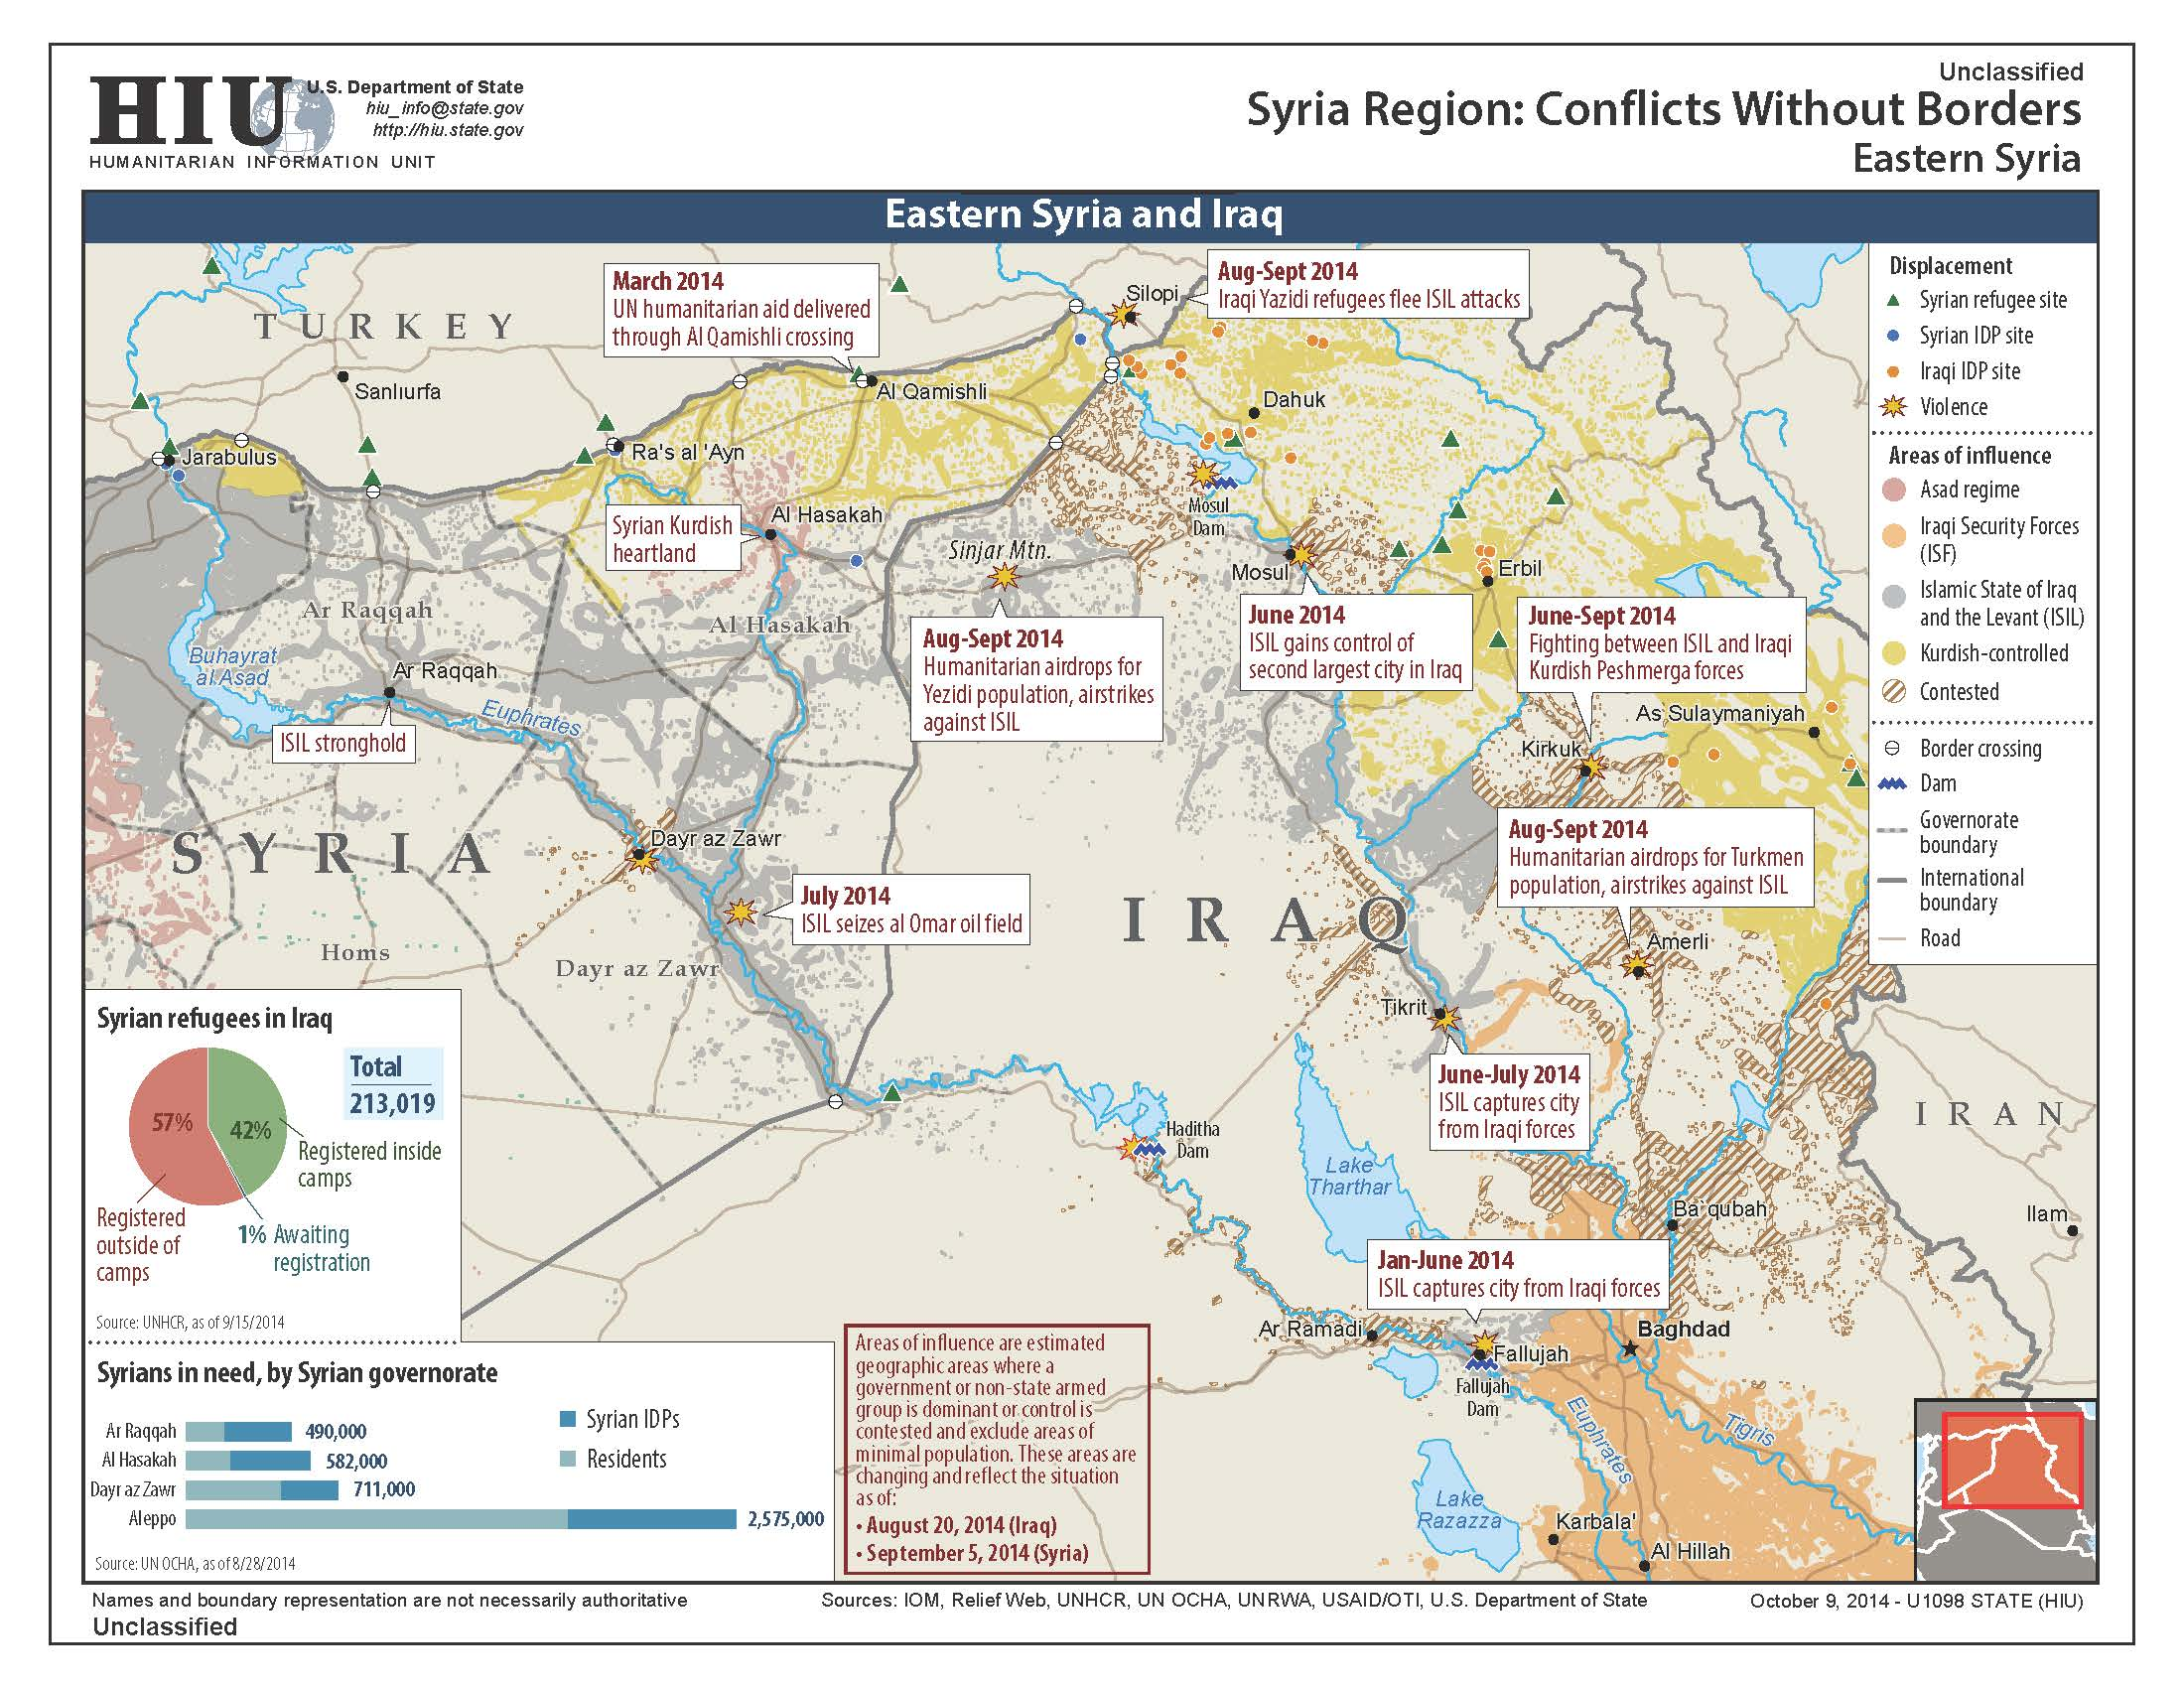 Us state department iraq syria conflict without borders map october dos syria isilpage5 gumiabroncs Choice Image